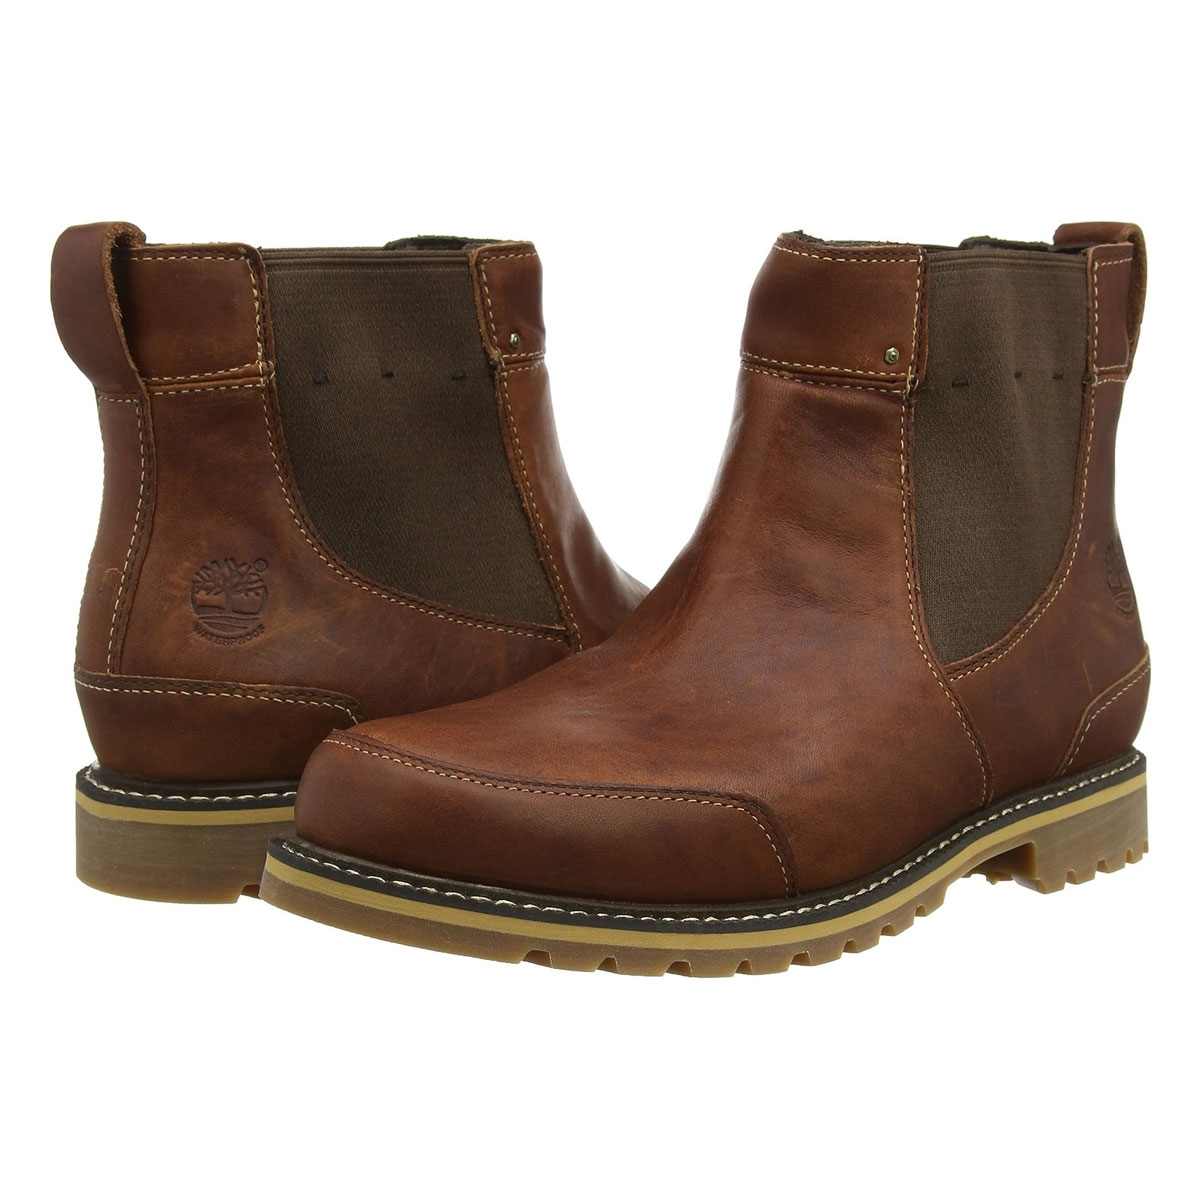 Image of Timberland Earthkeepers Chestnut Ridge Chelsea Boot Men's   Brown